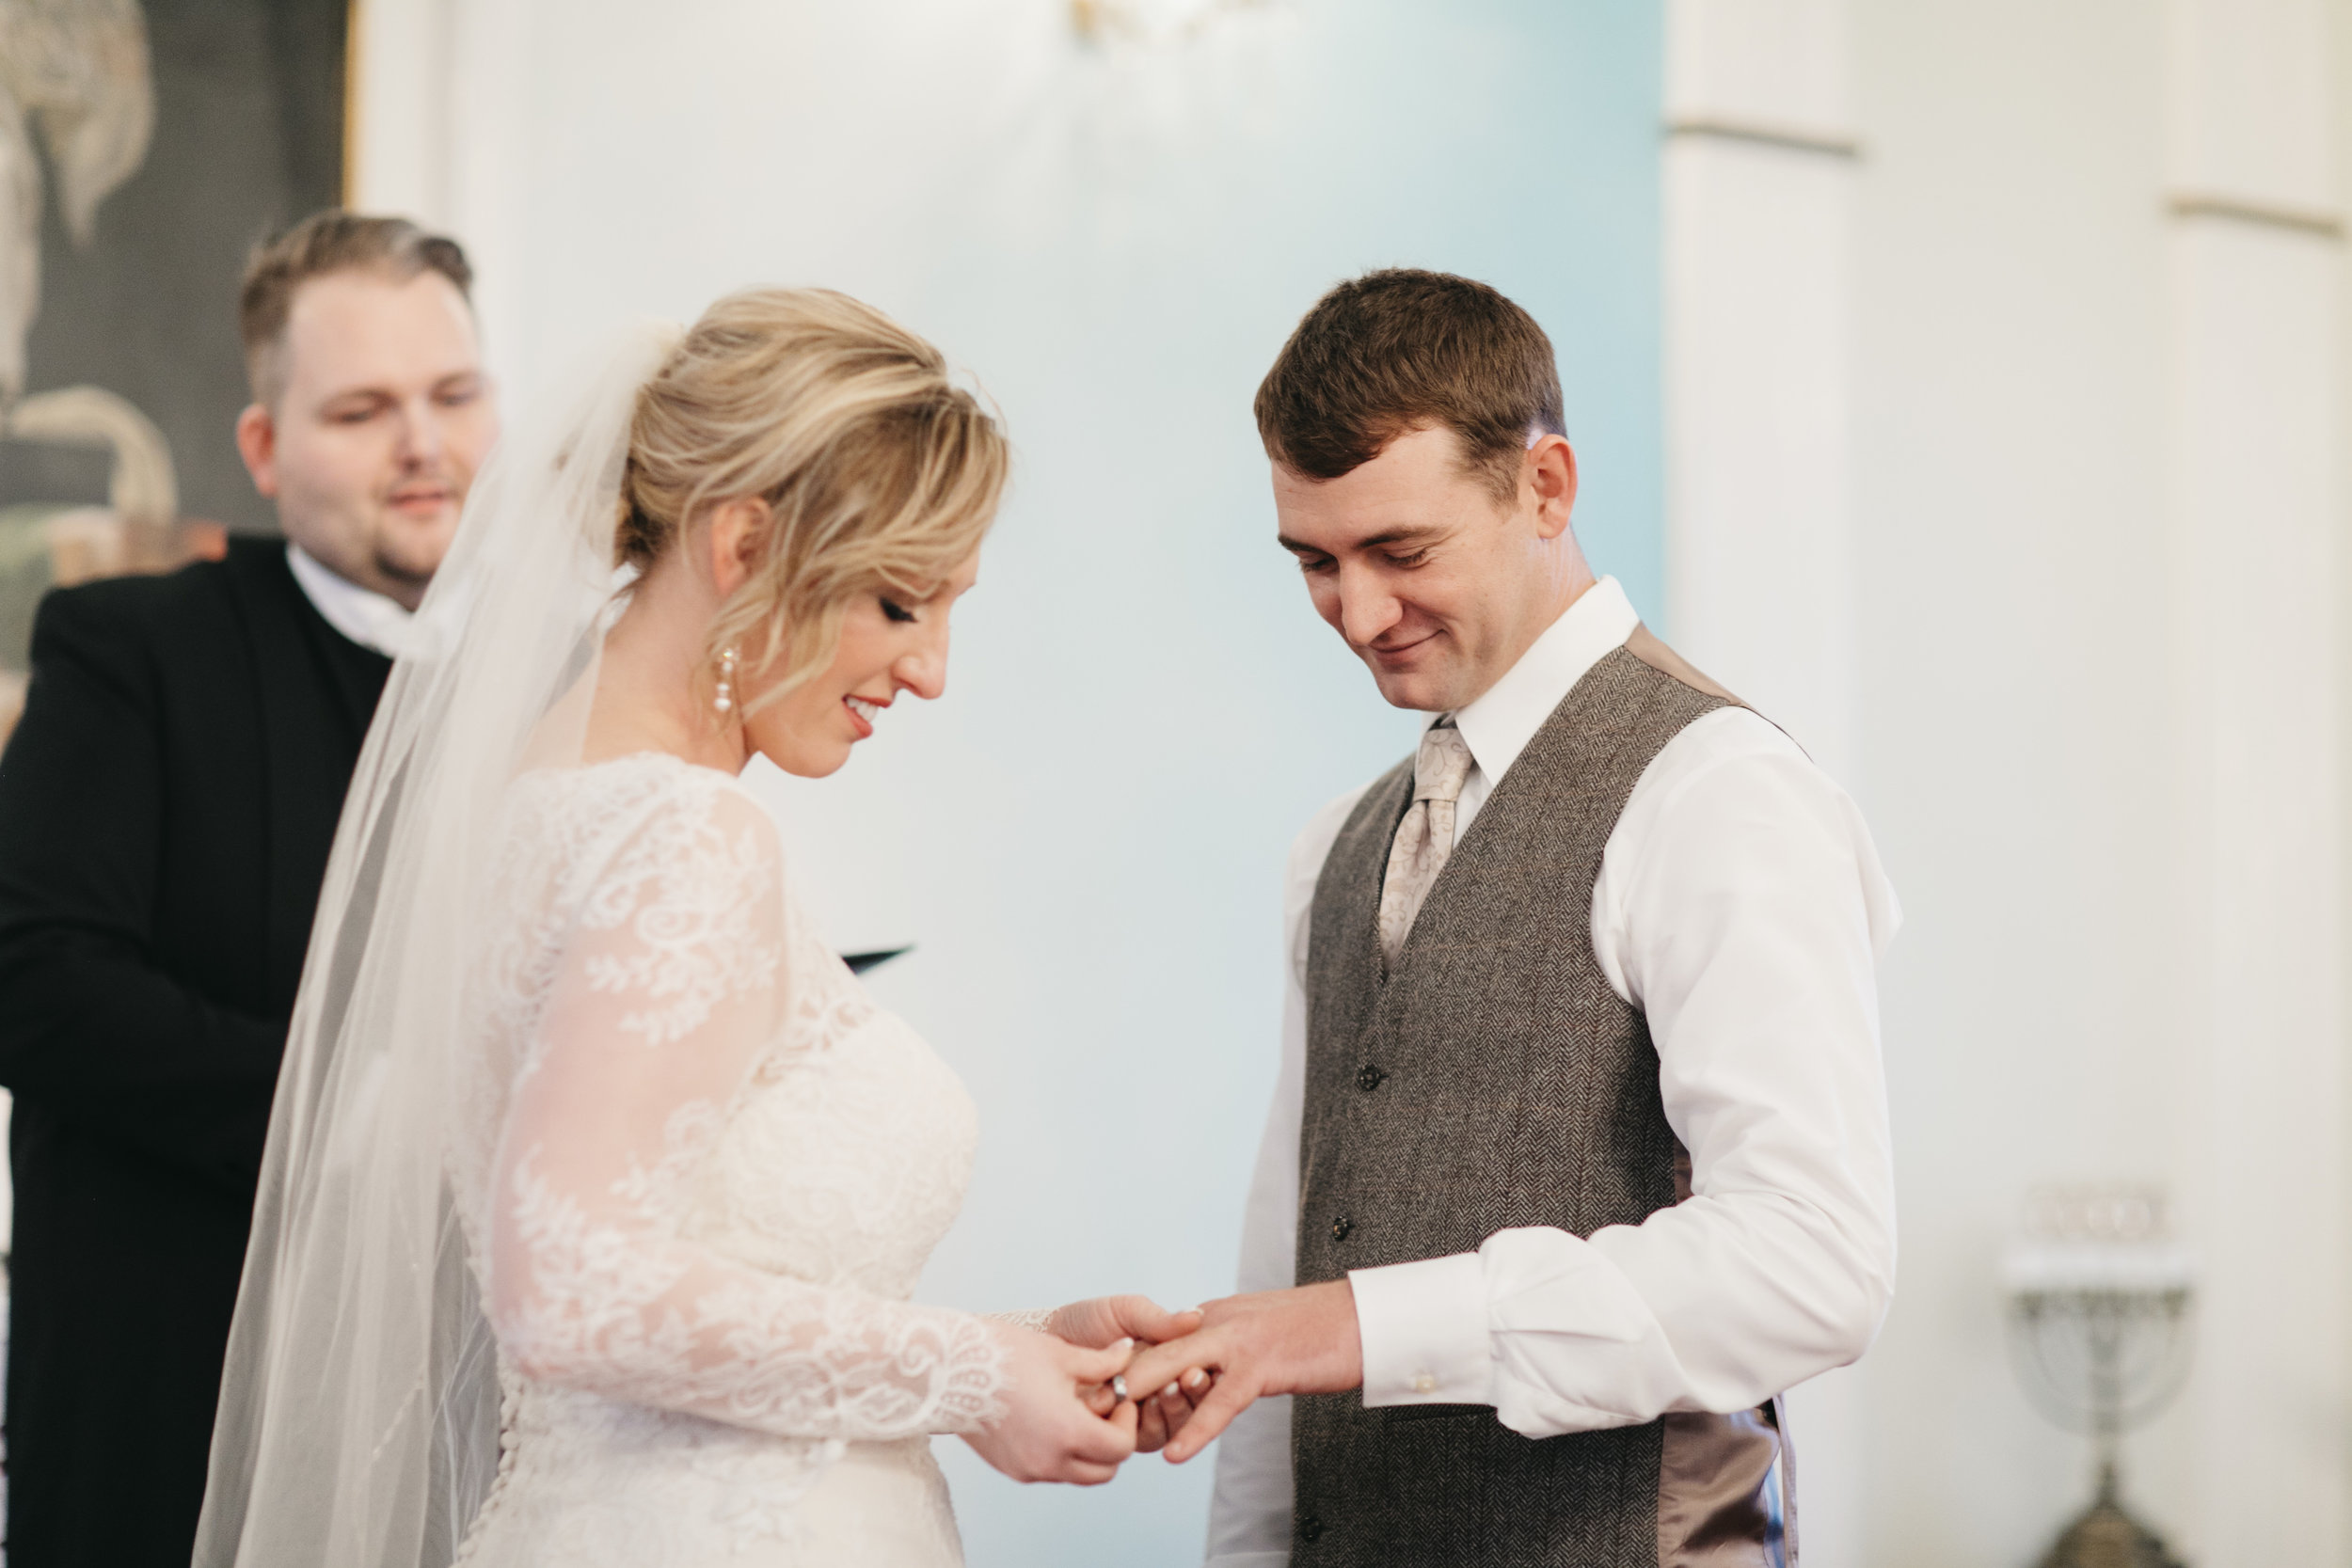 A beautiful bride puts the wedding ring on her groom's finger in Hvalsneskirkja church during their Iceland Elopement.